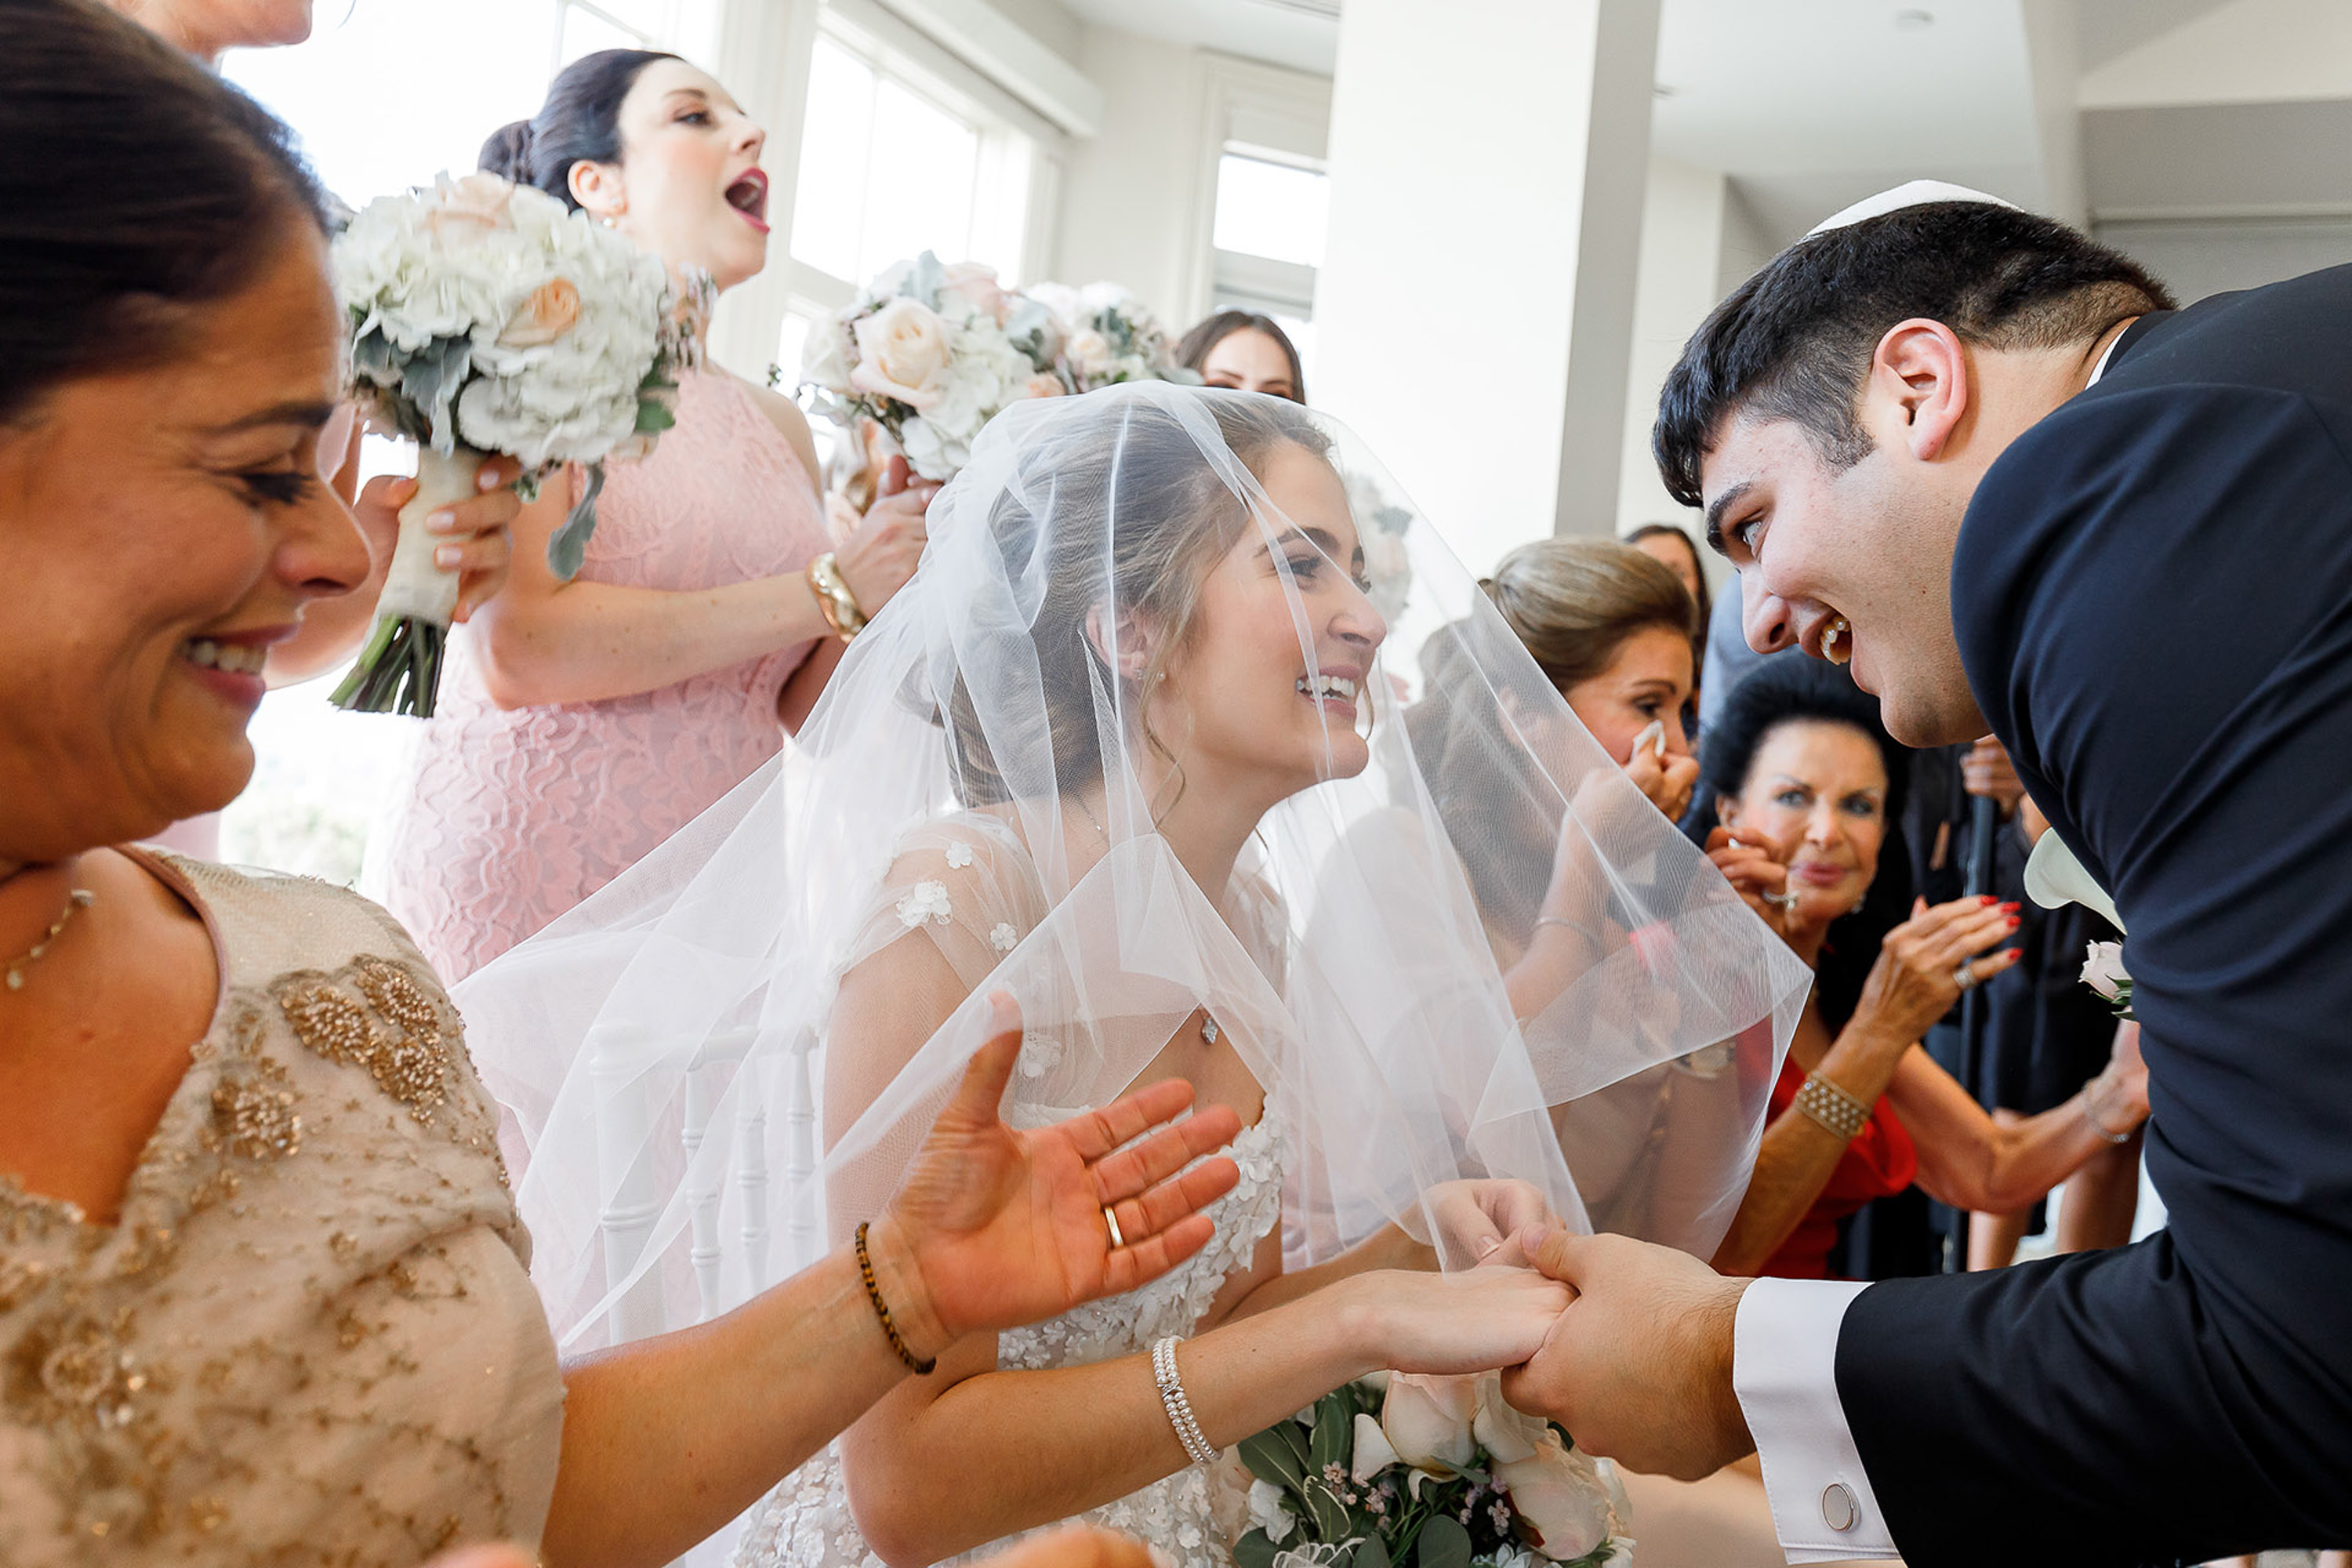 sweet-reception-moment-with-bride-and-guest-alex-paul-photography